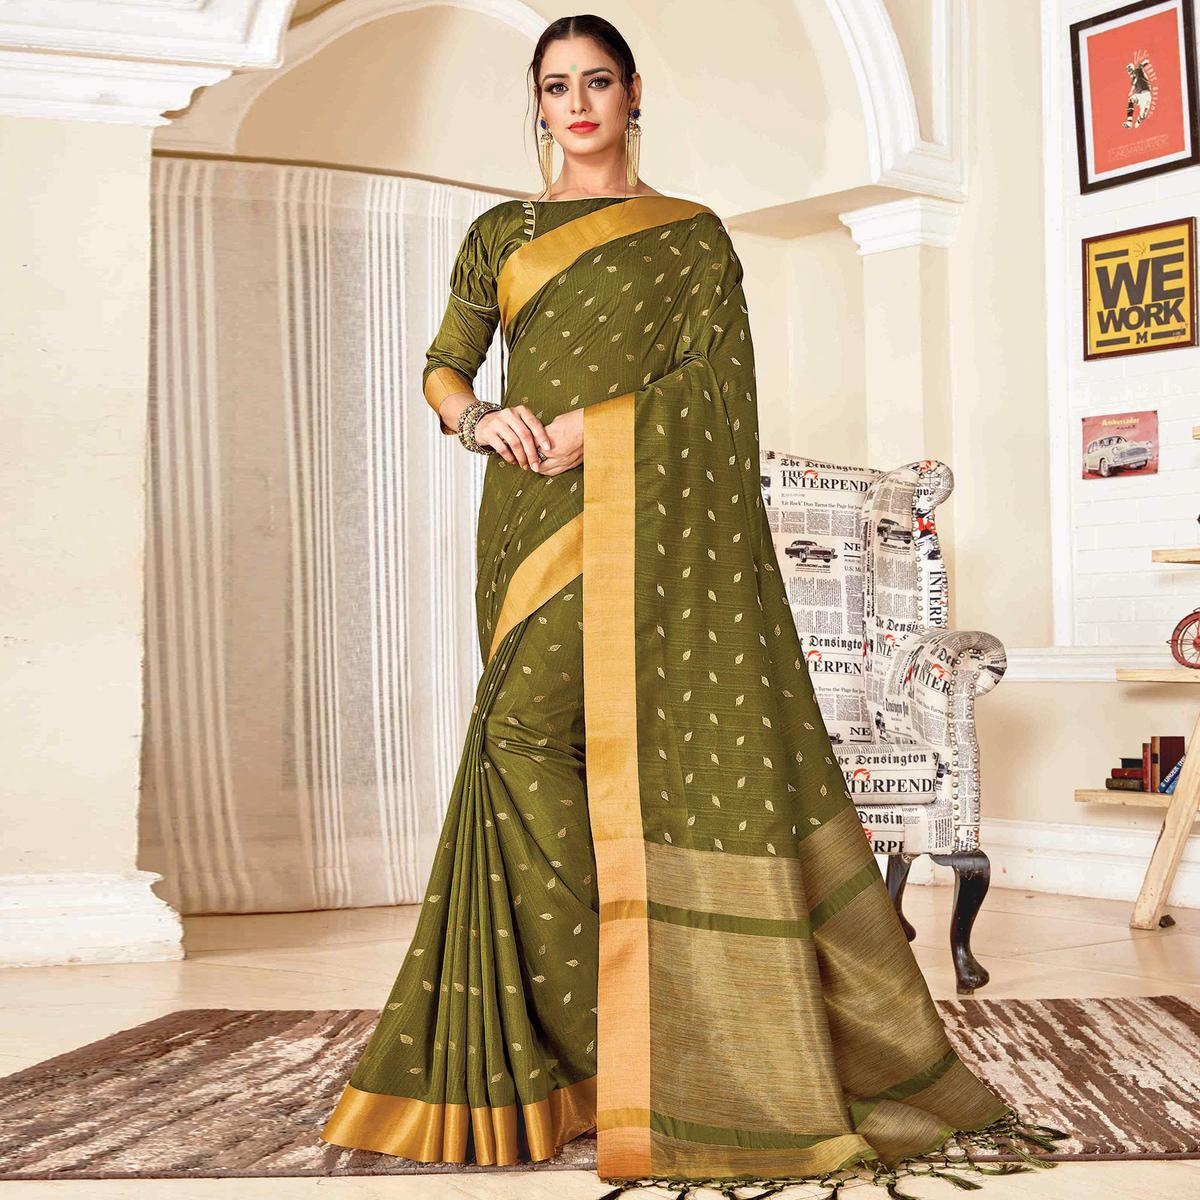 Jazzy Olive Green Colored Festive Wear Woven Handloom Silk Saree With Tassels